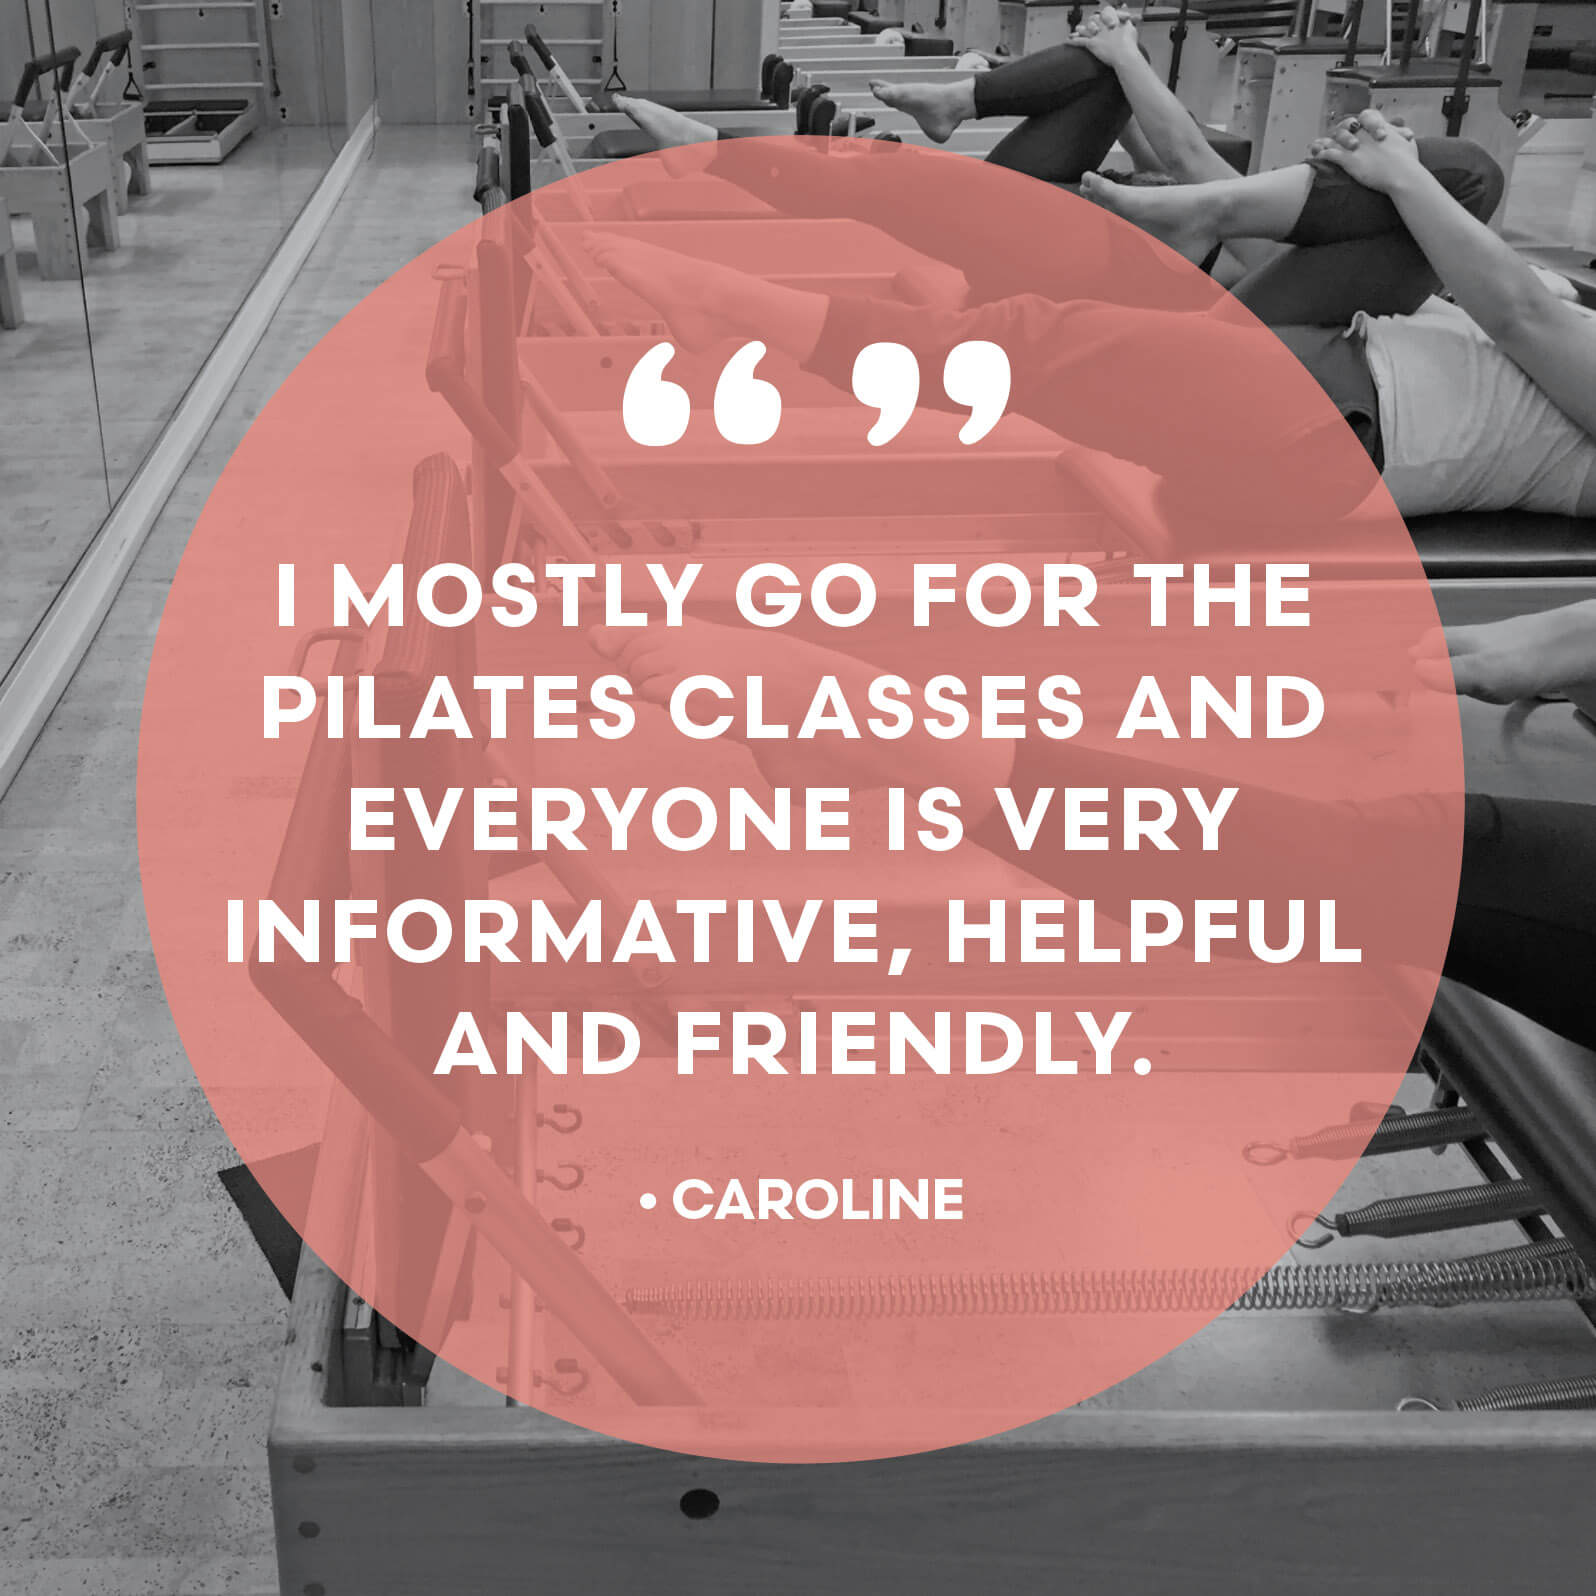 I mostly go for the Pilates classes and everyone is very informative, helpful and friendly.